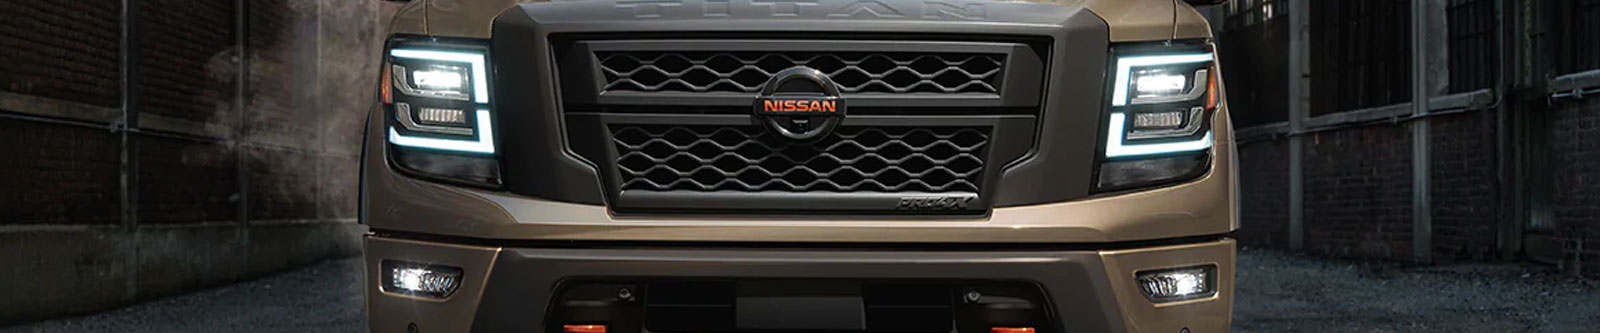 Nissan Auto Dealership Serving Gautier, Mississippi, Drivers